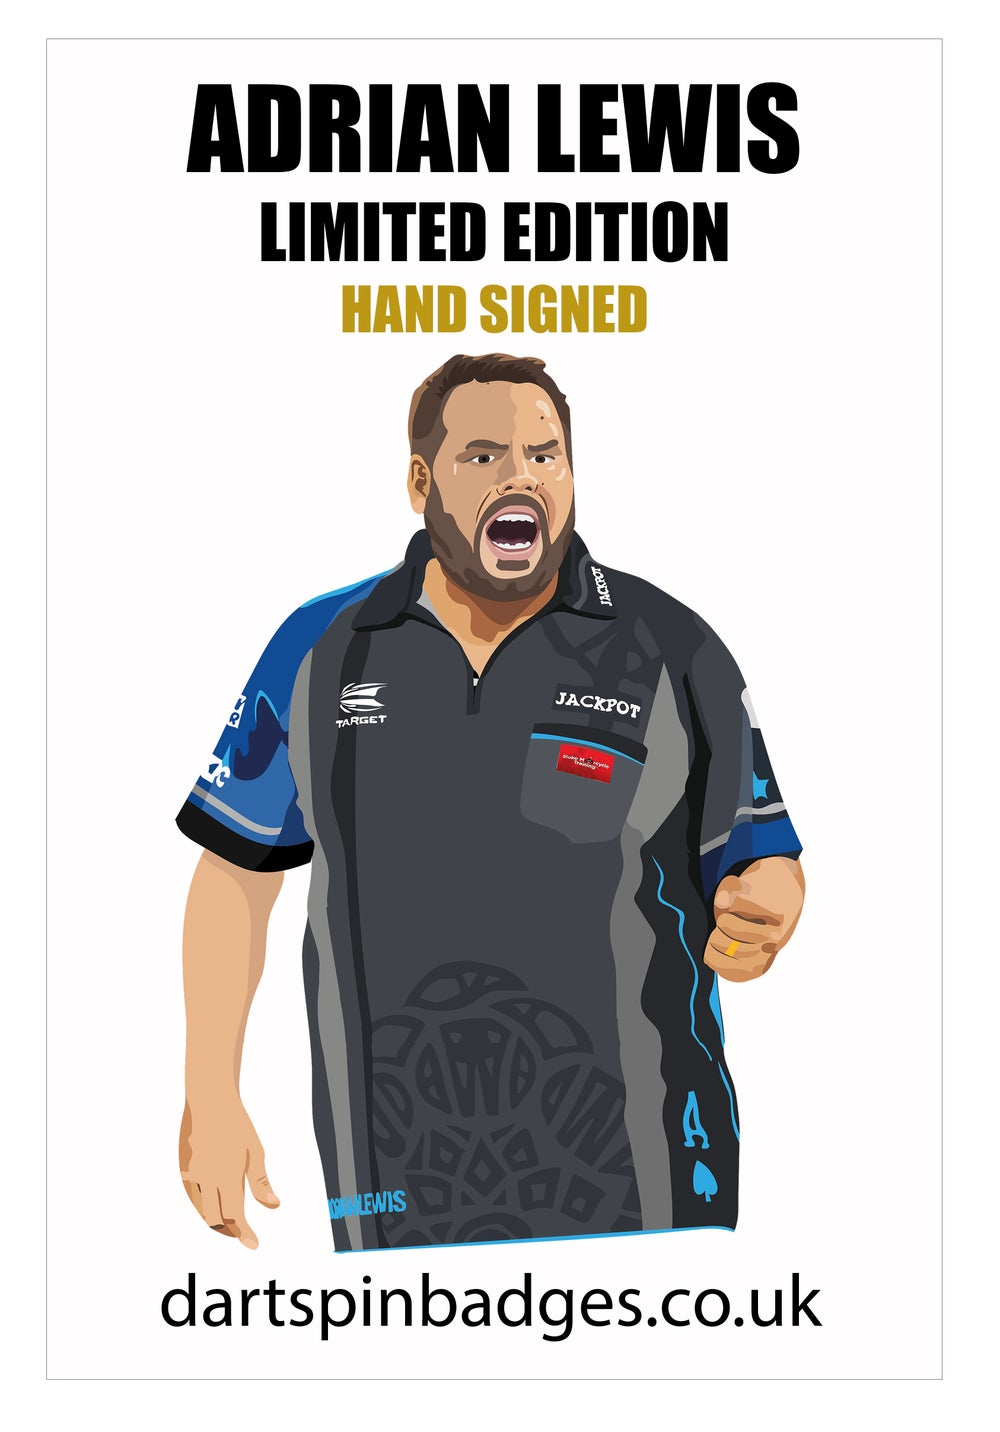 ADRIAN LEWIS LIMITED EDITION PIN BADGE HAND SIGNED